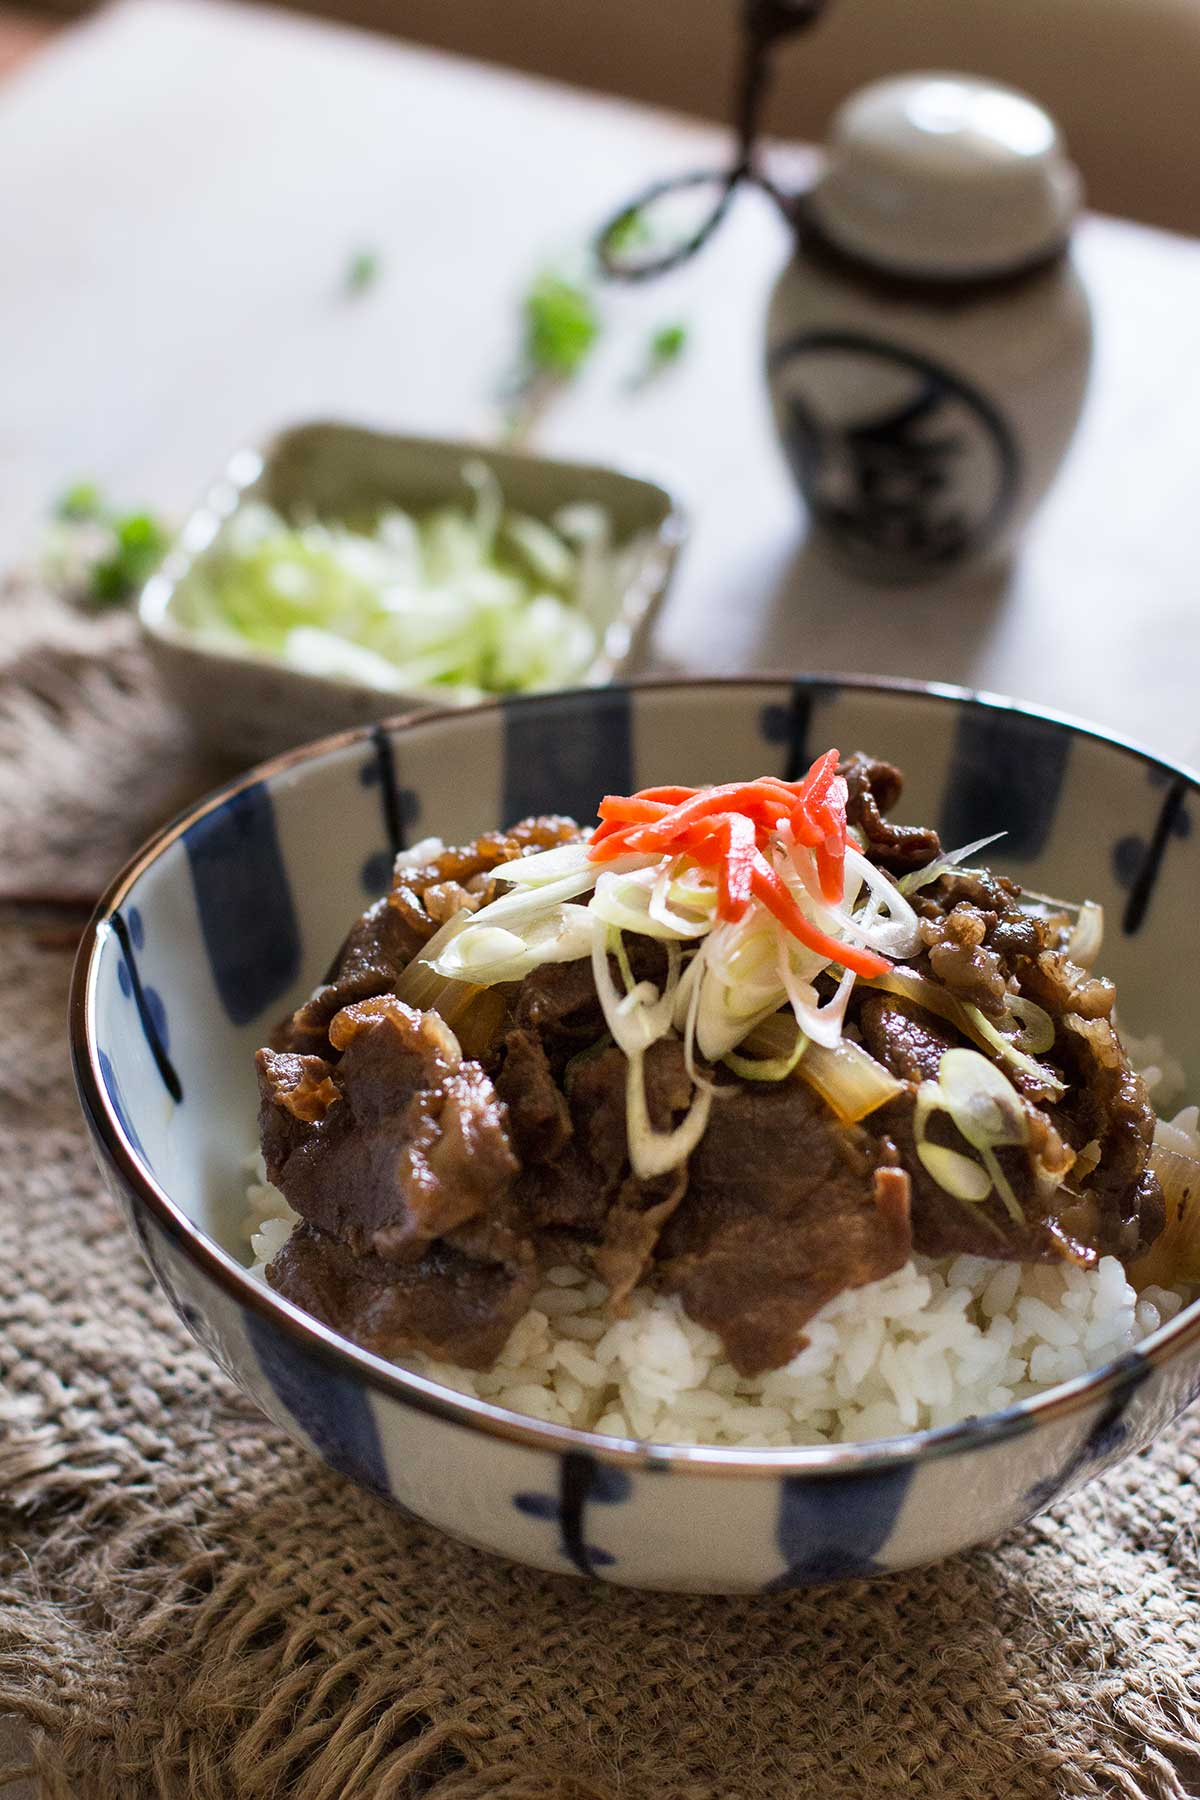 Gyudon Japanese Beef Bowls 牛丼 | Chopstick Chronicles